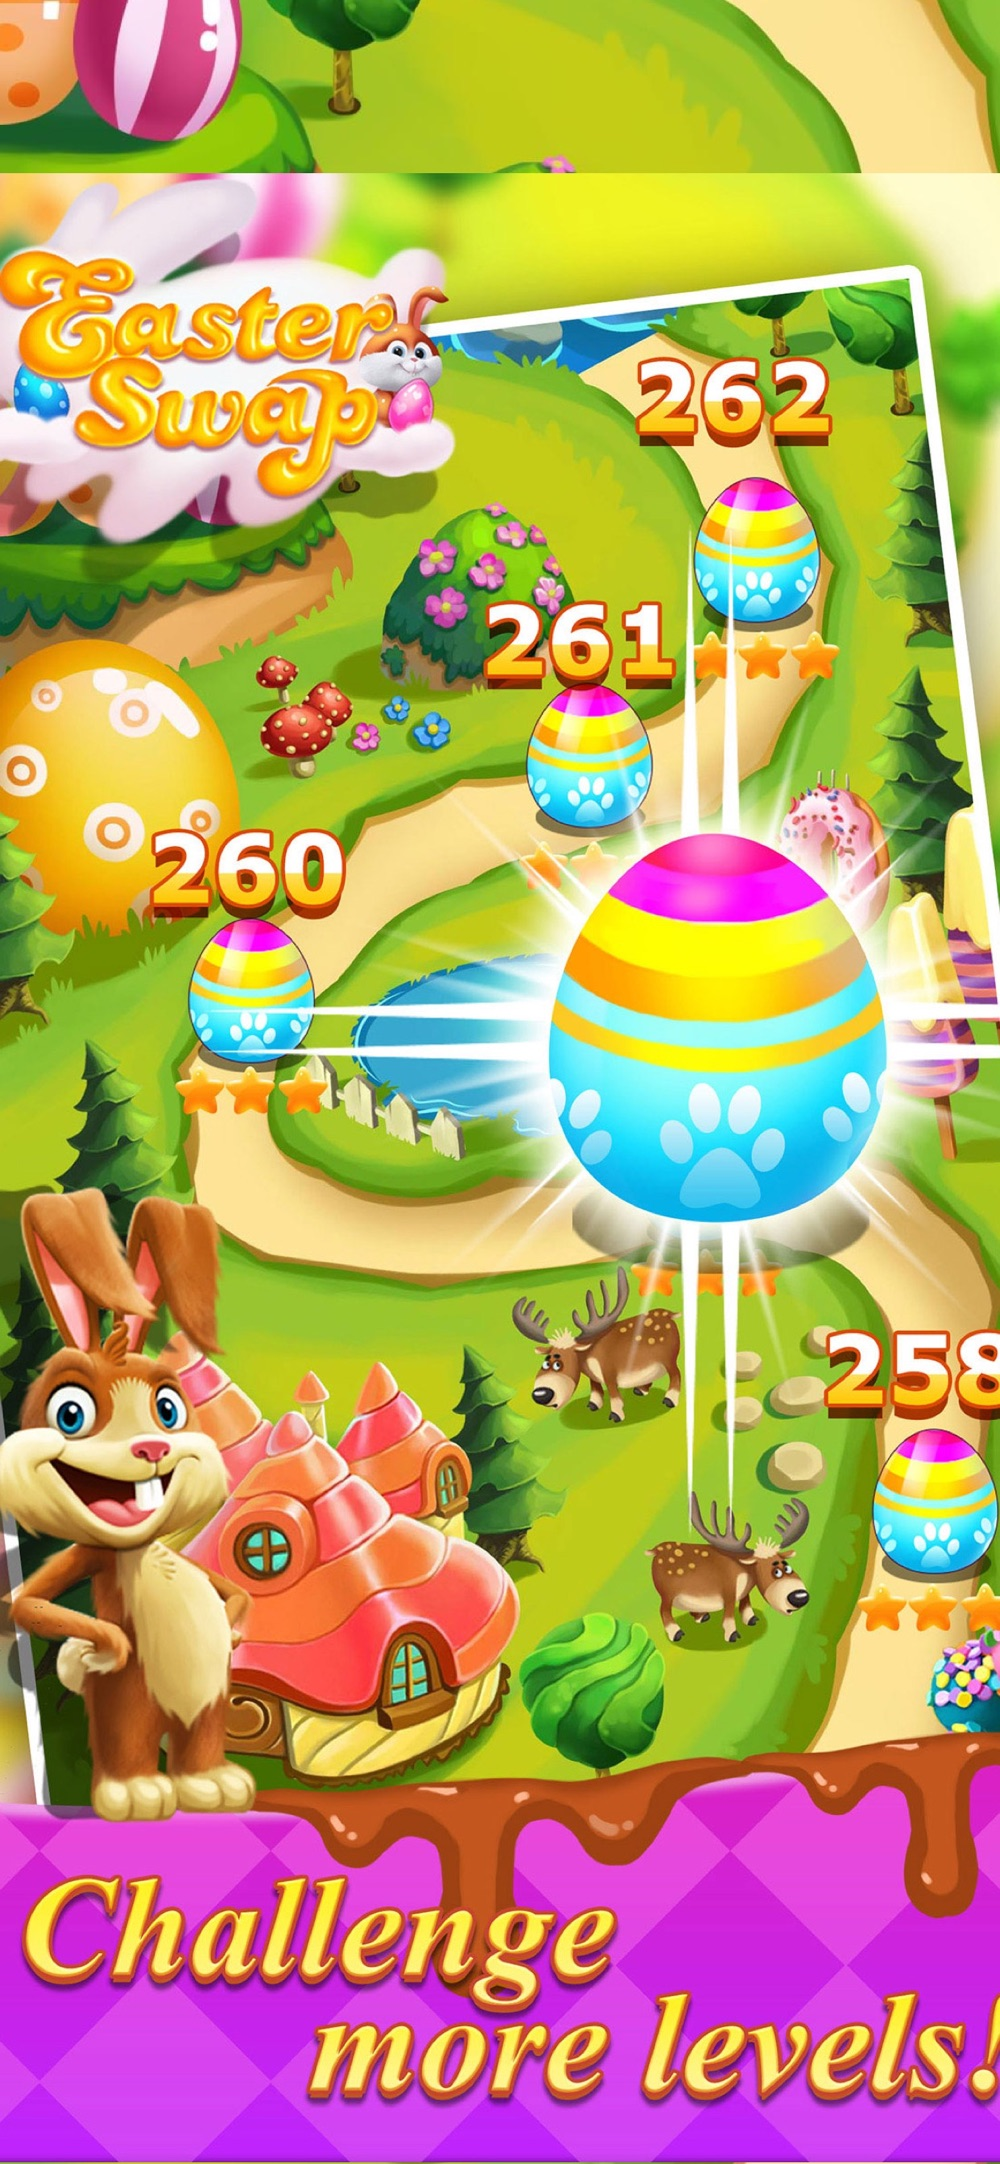 Easter Swap - Coloring Holiday hack tool